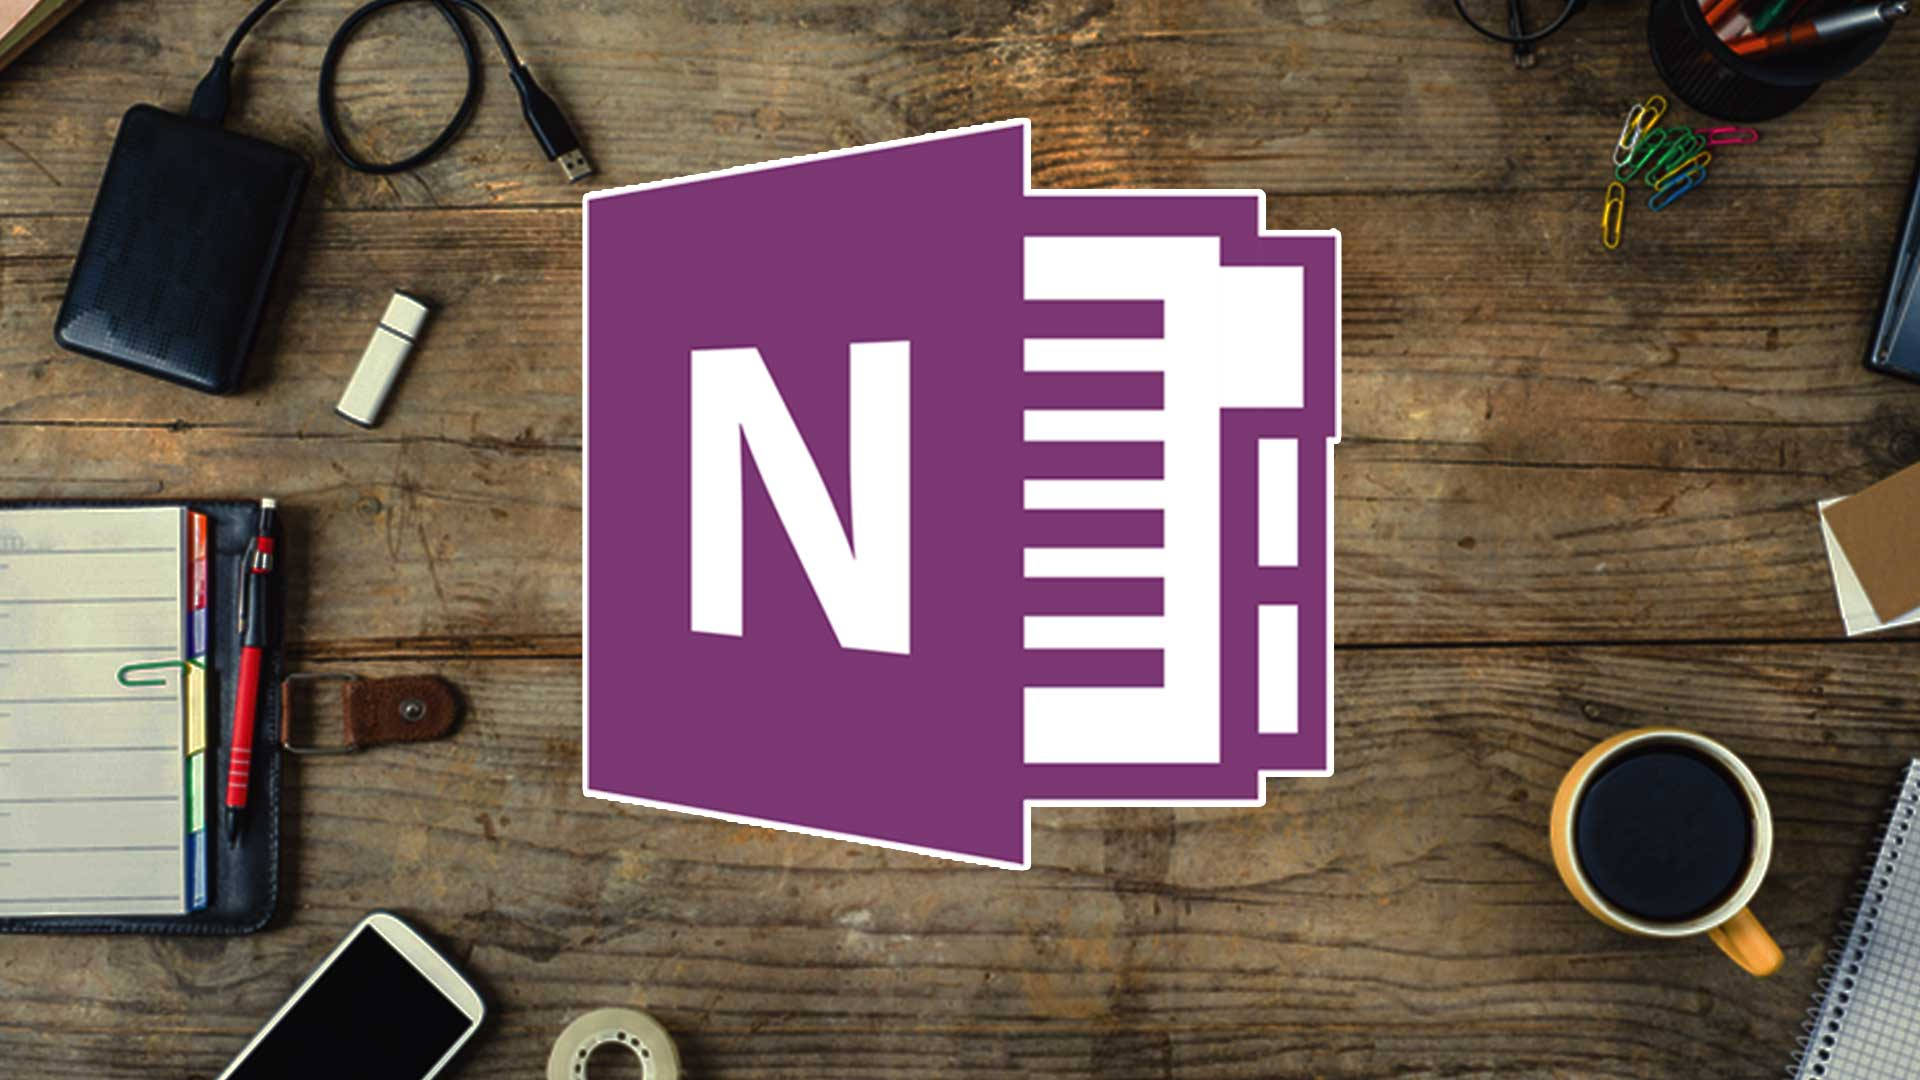 OneNote Web Clipper Extension for Chromebooks by Microsoft